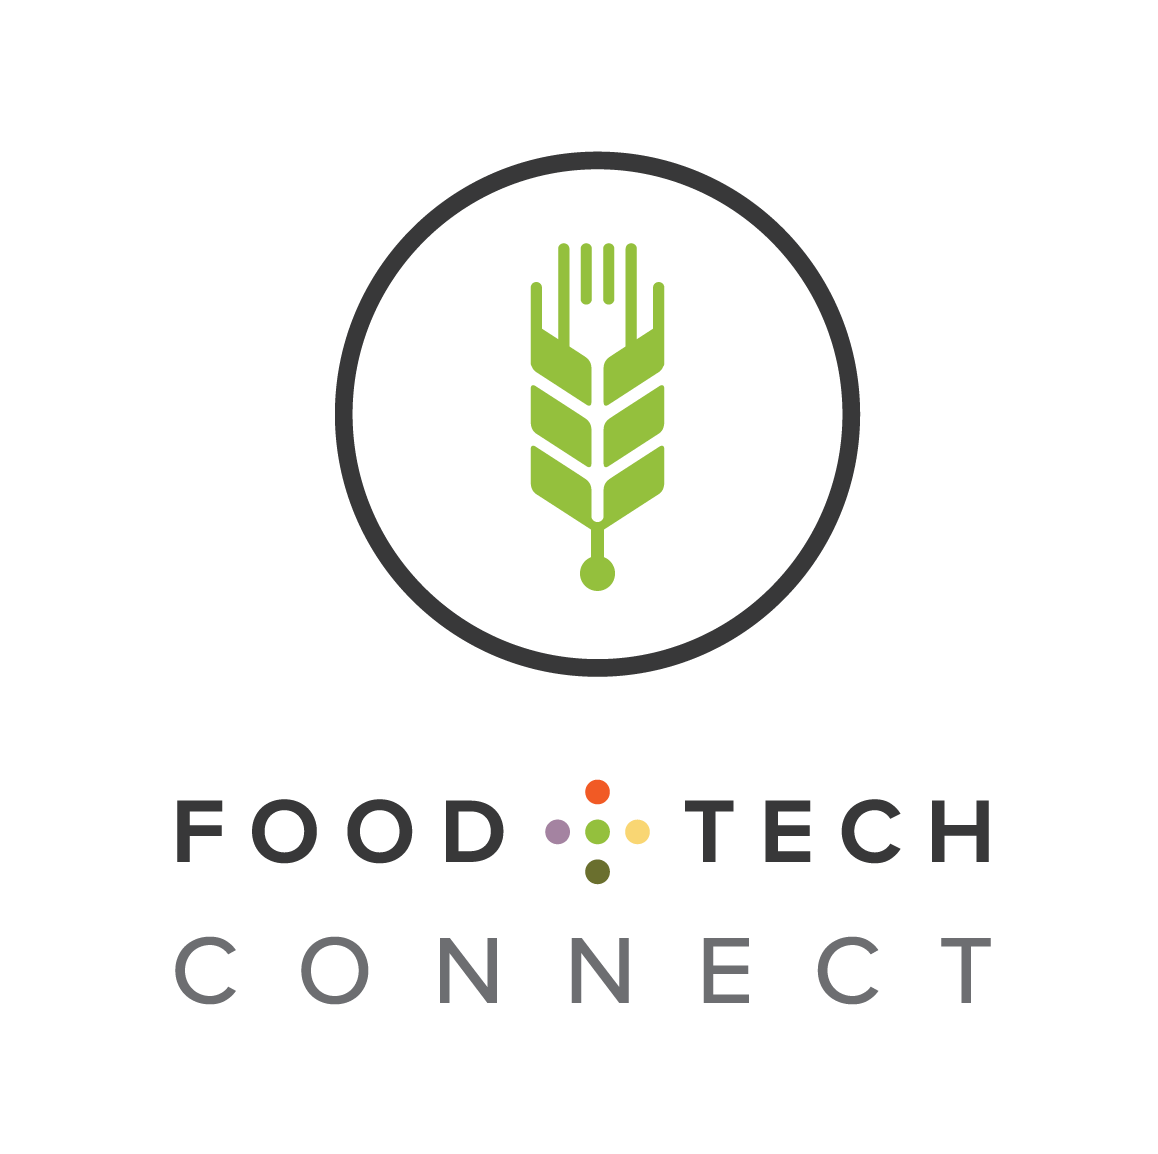 Food+Tech Connect Ultimate Food Tech Gift Guide